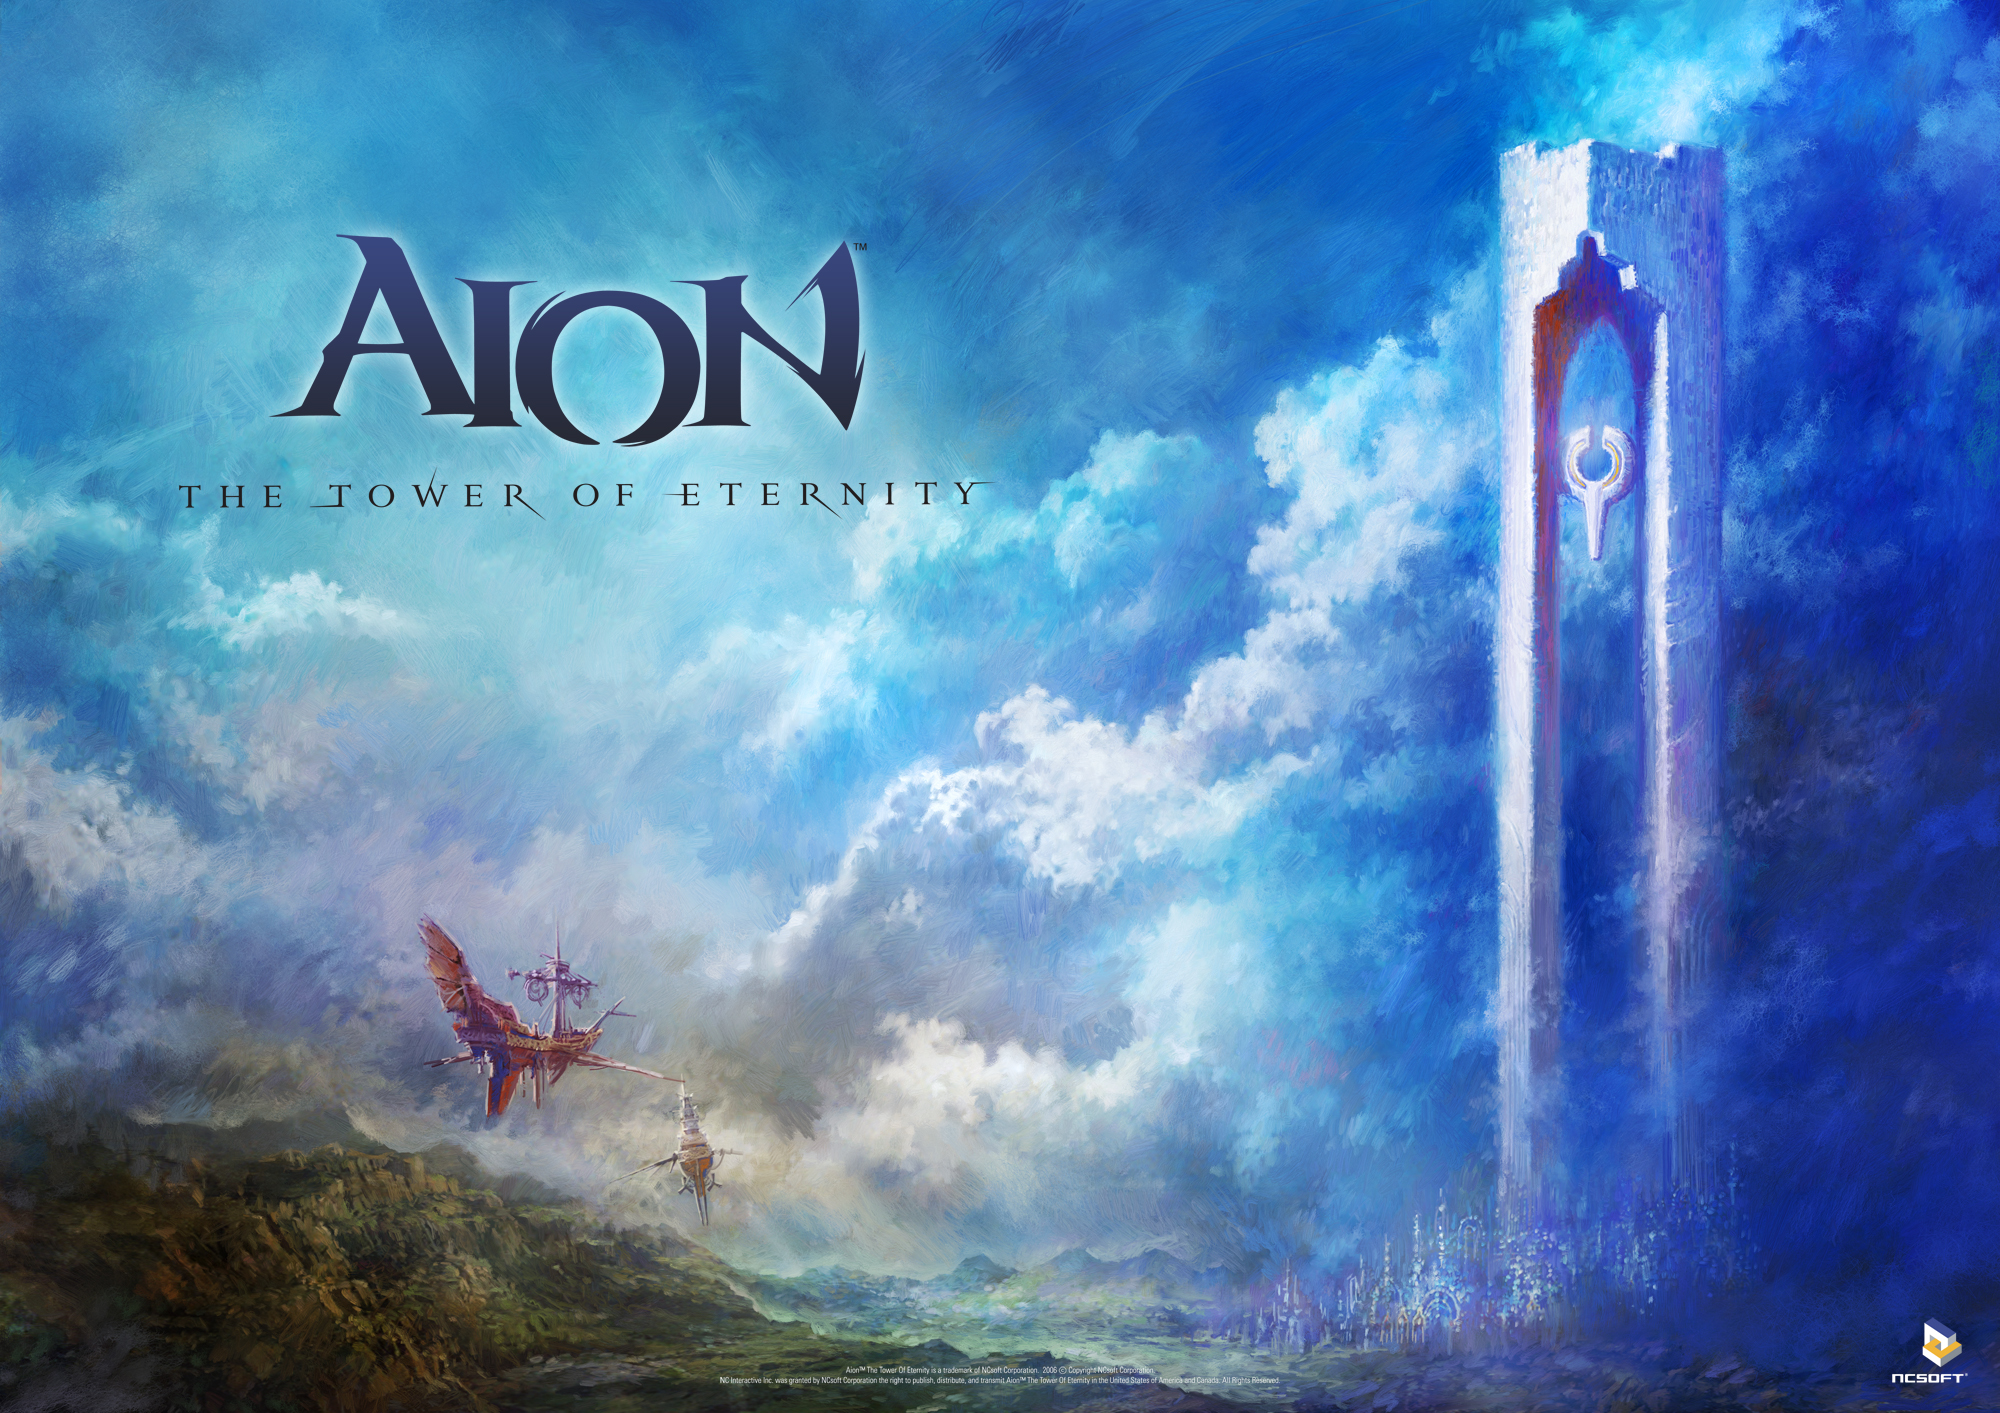 High Resolution Wallpaper   Aion: Tower Of Eternity 2000x1413 px